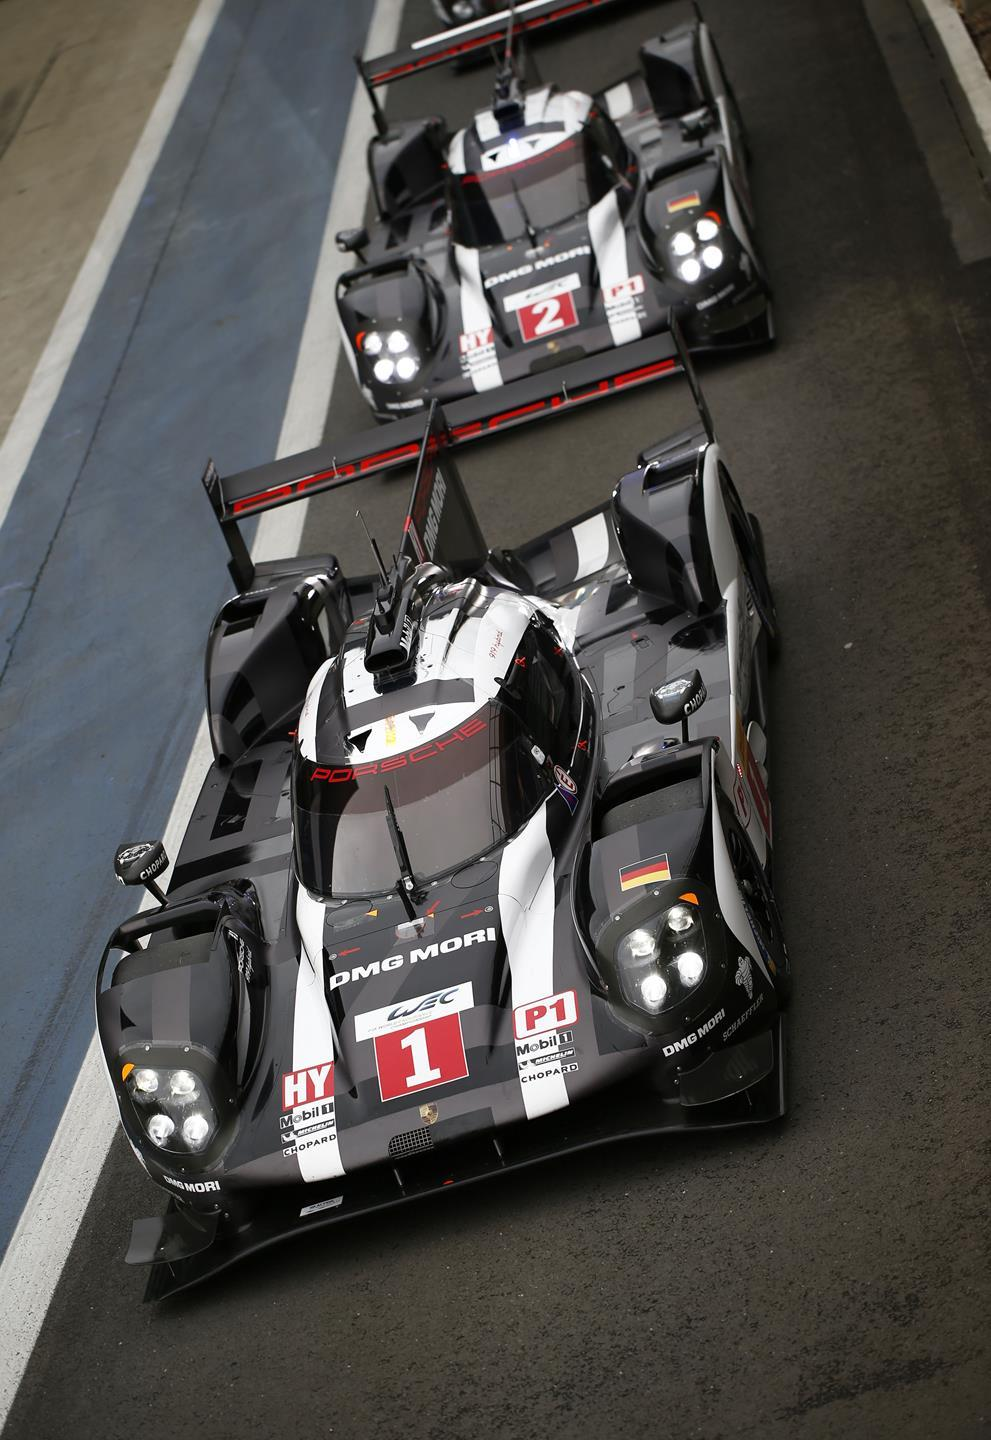 2016 porsche 919 hybrid image. photo 46 of 46